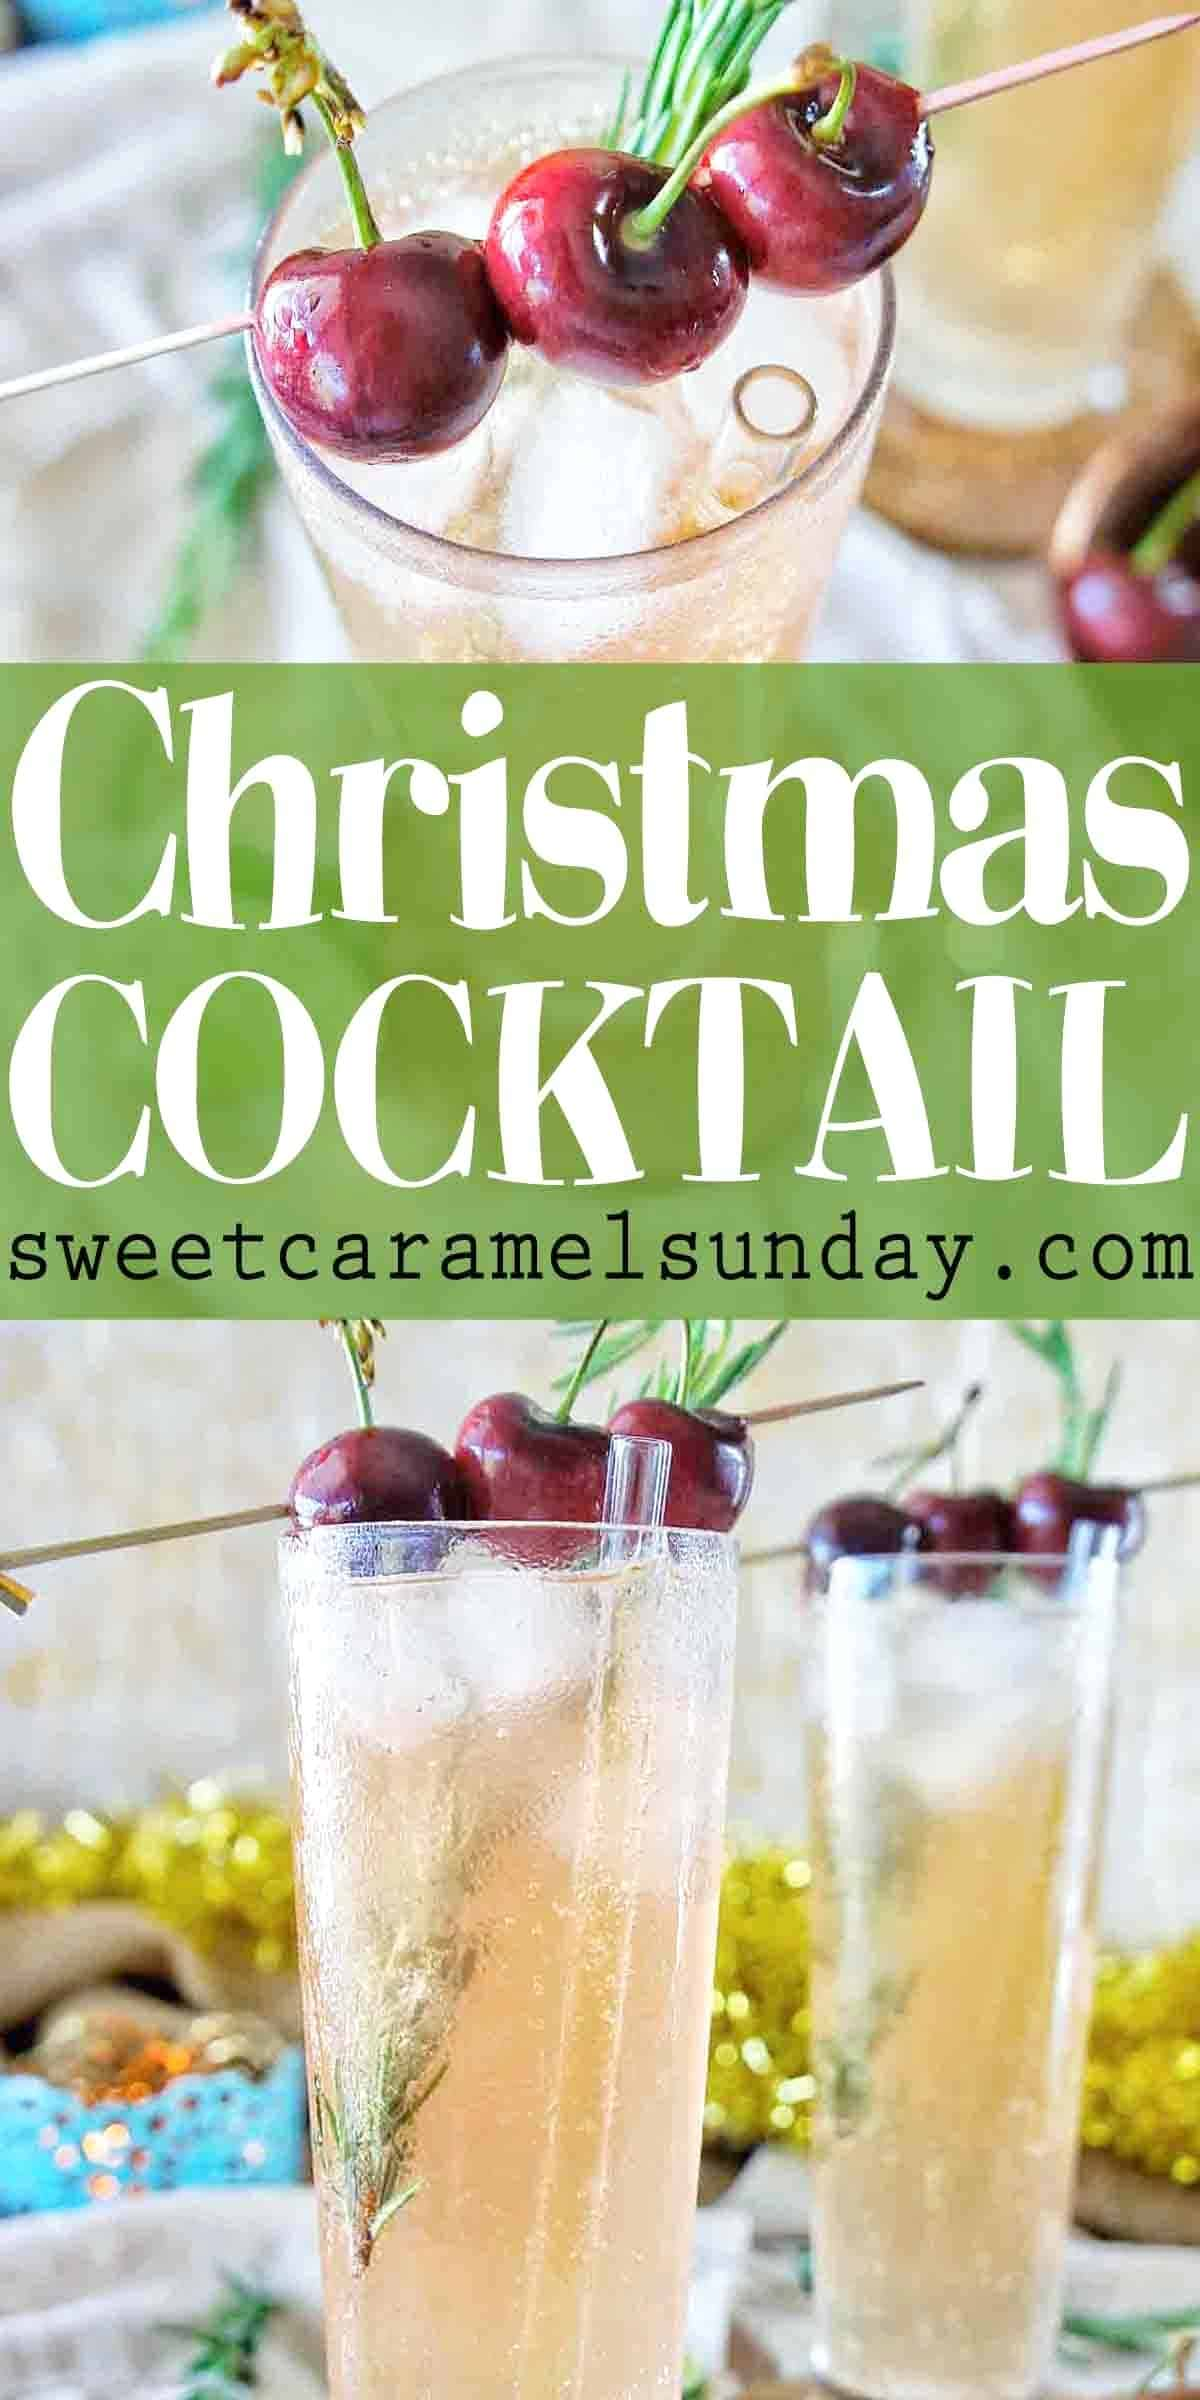 Christmas Cocktail with text overlay